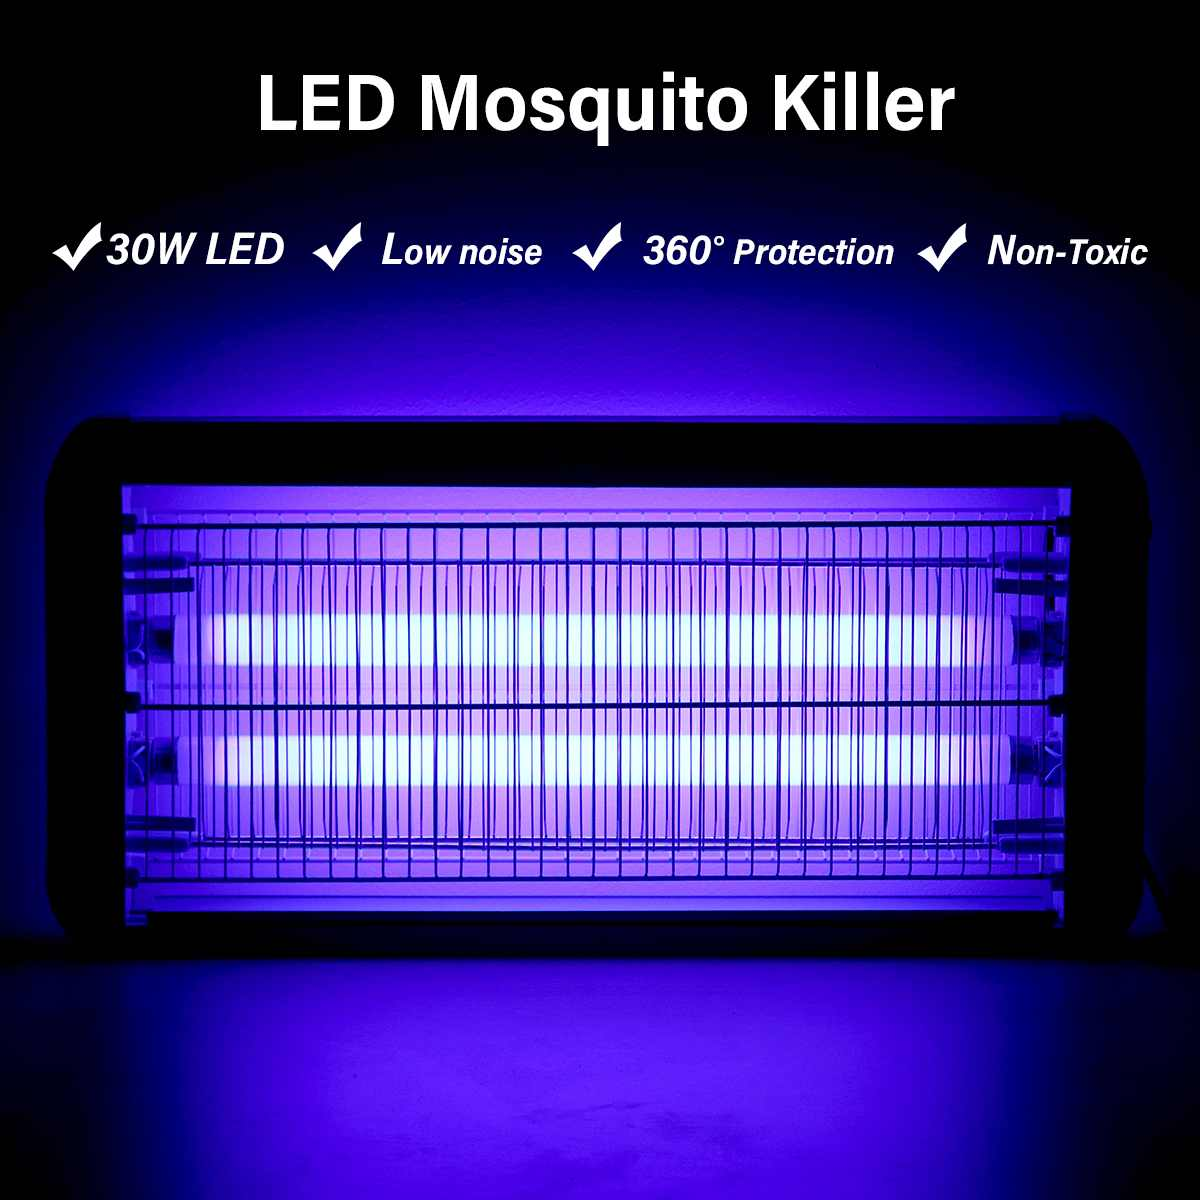 Wall Mounted Electric LED Mosquito Killer Lamp 30W Household Outdoor Anti Insect Pest Mosquitos Trap Bug Zapper Killer LightsWall Mounted Electric LED Mosquito Killer Lamp 30W Household Outdoor Anti Insect Pest Mosquitos Trap Bug Zapper Killer Lights